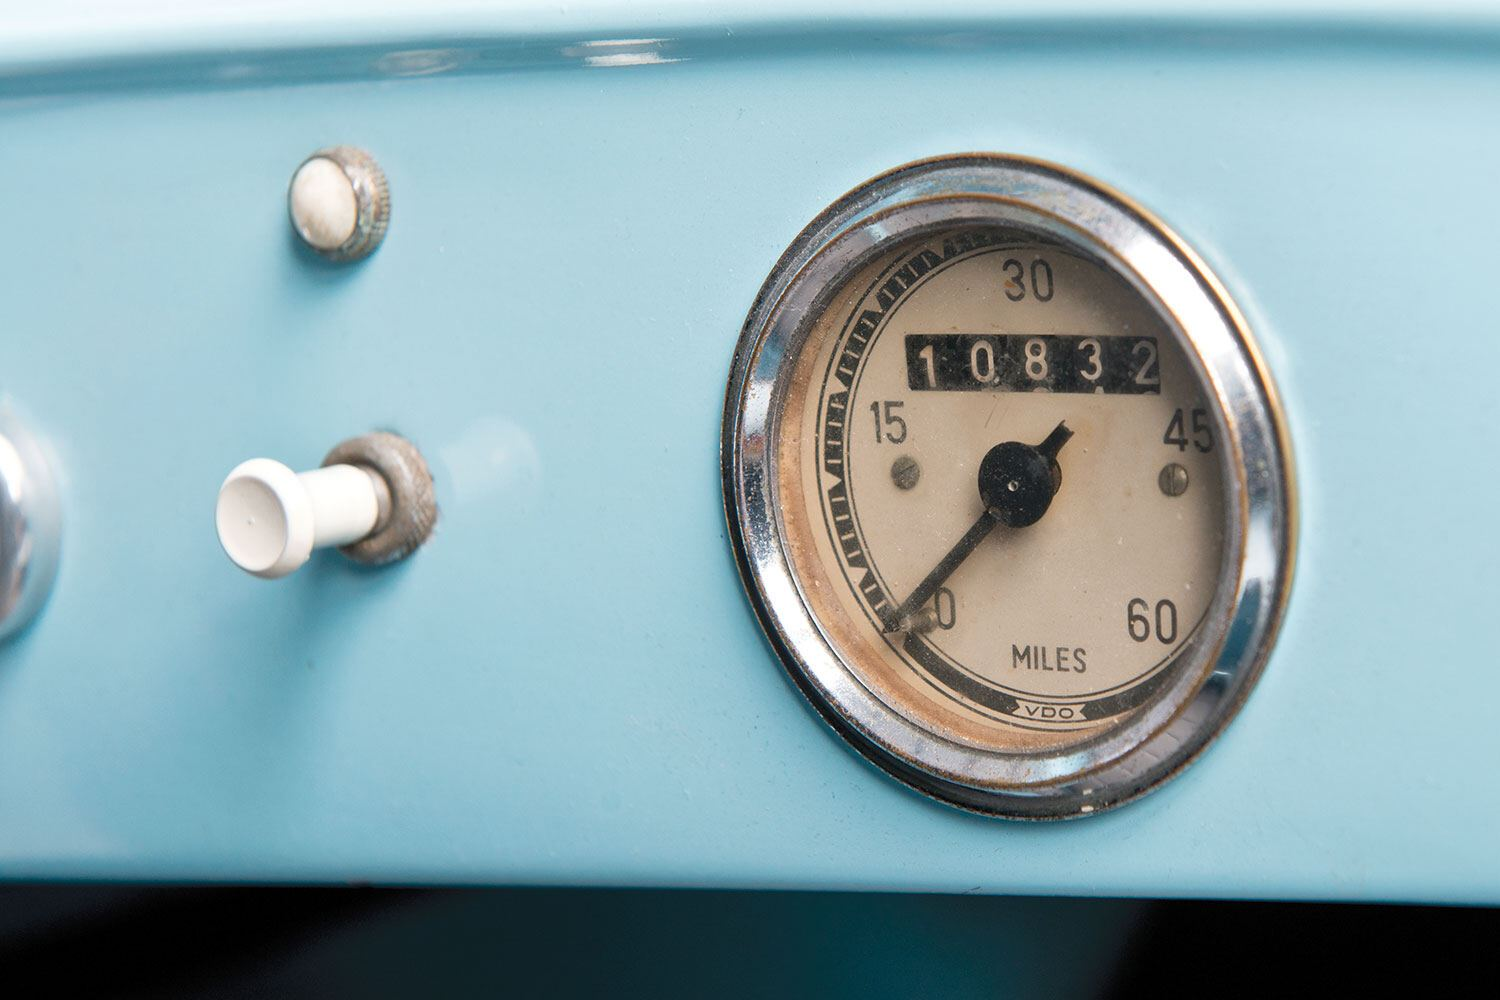 The ALCA Volpe dashboard Pic: RM Sotheby's | The ALCA Volpe